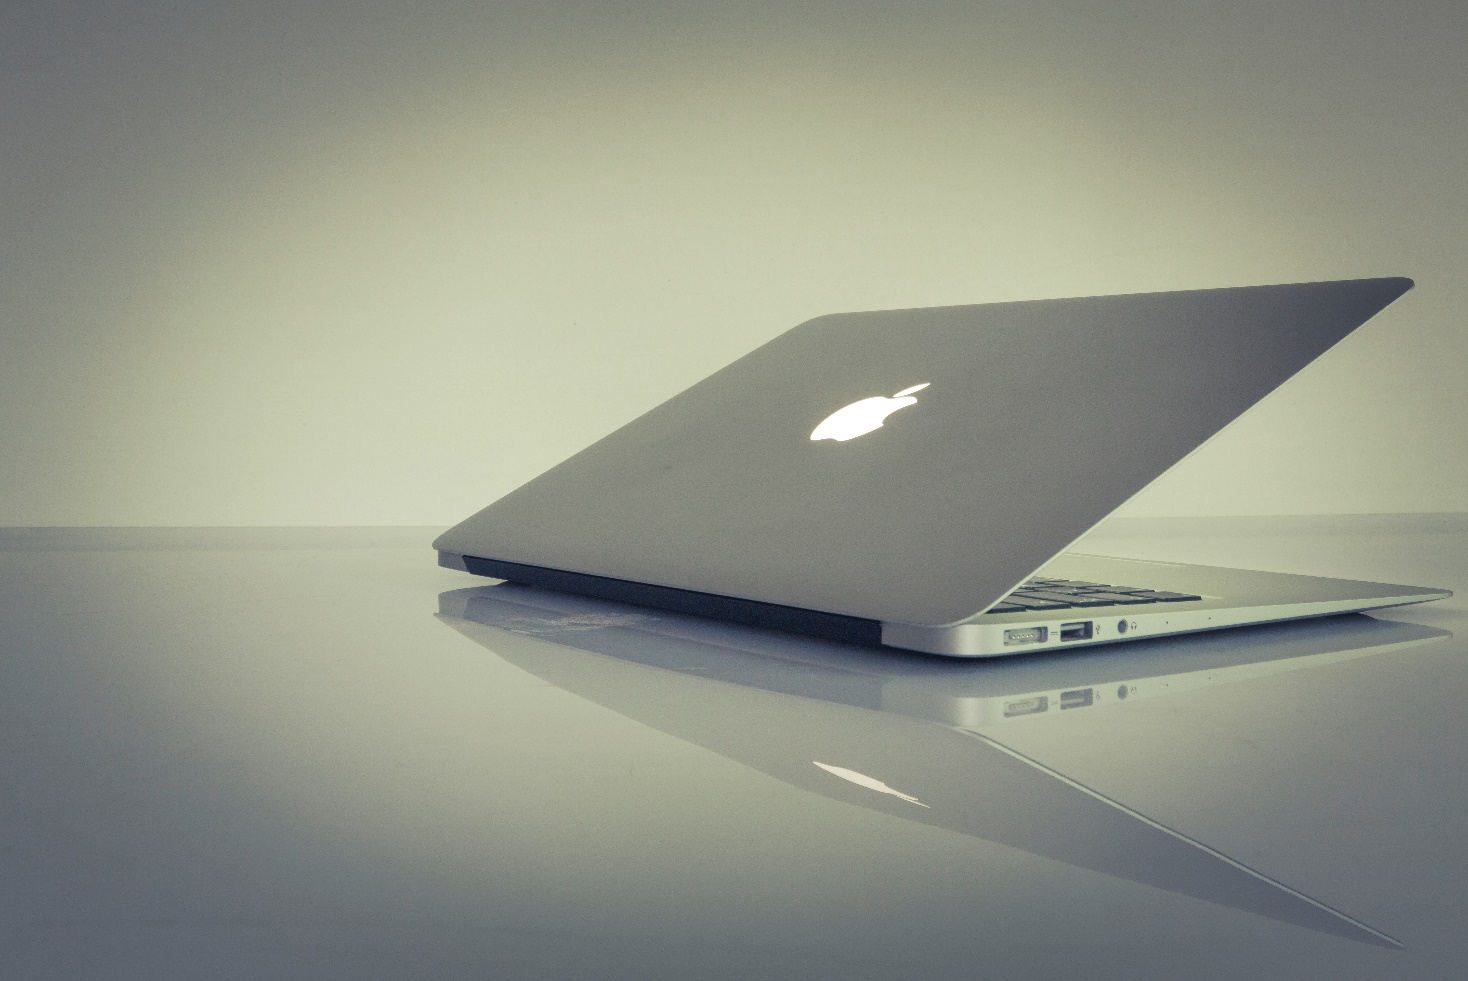 Stay Protected as New Malware Infects Macs